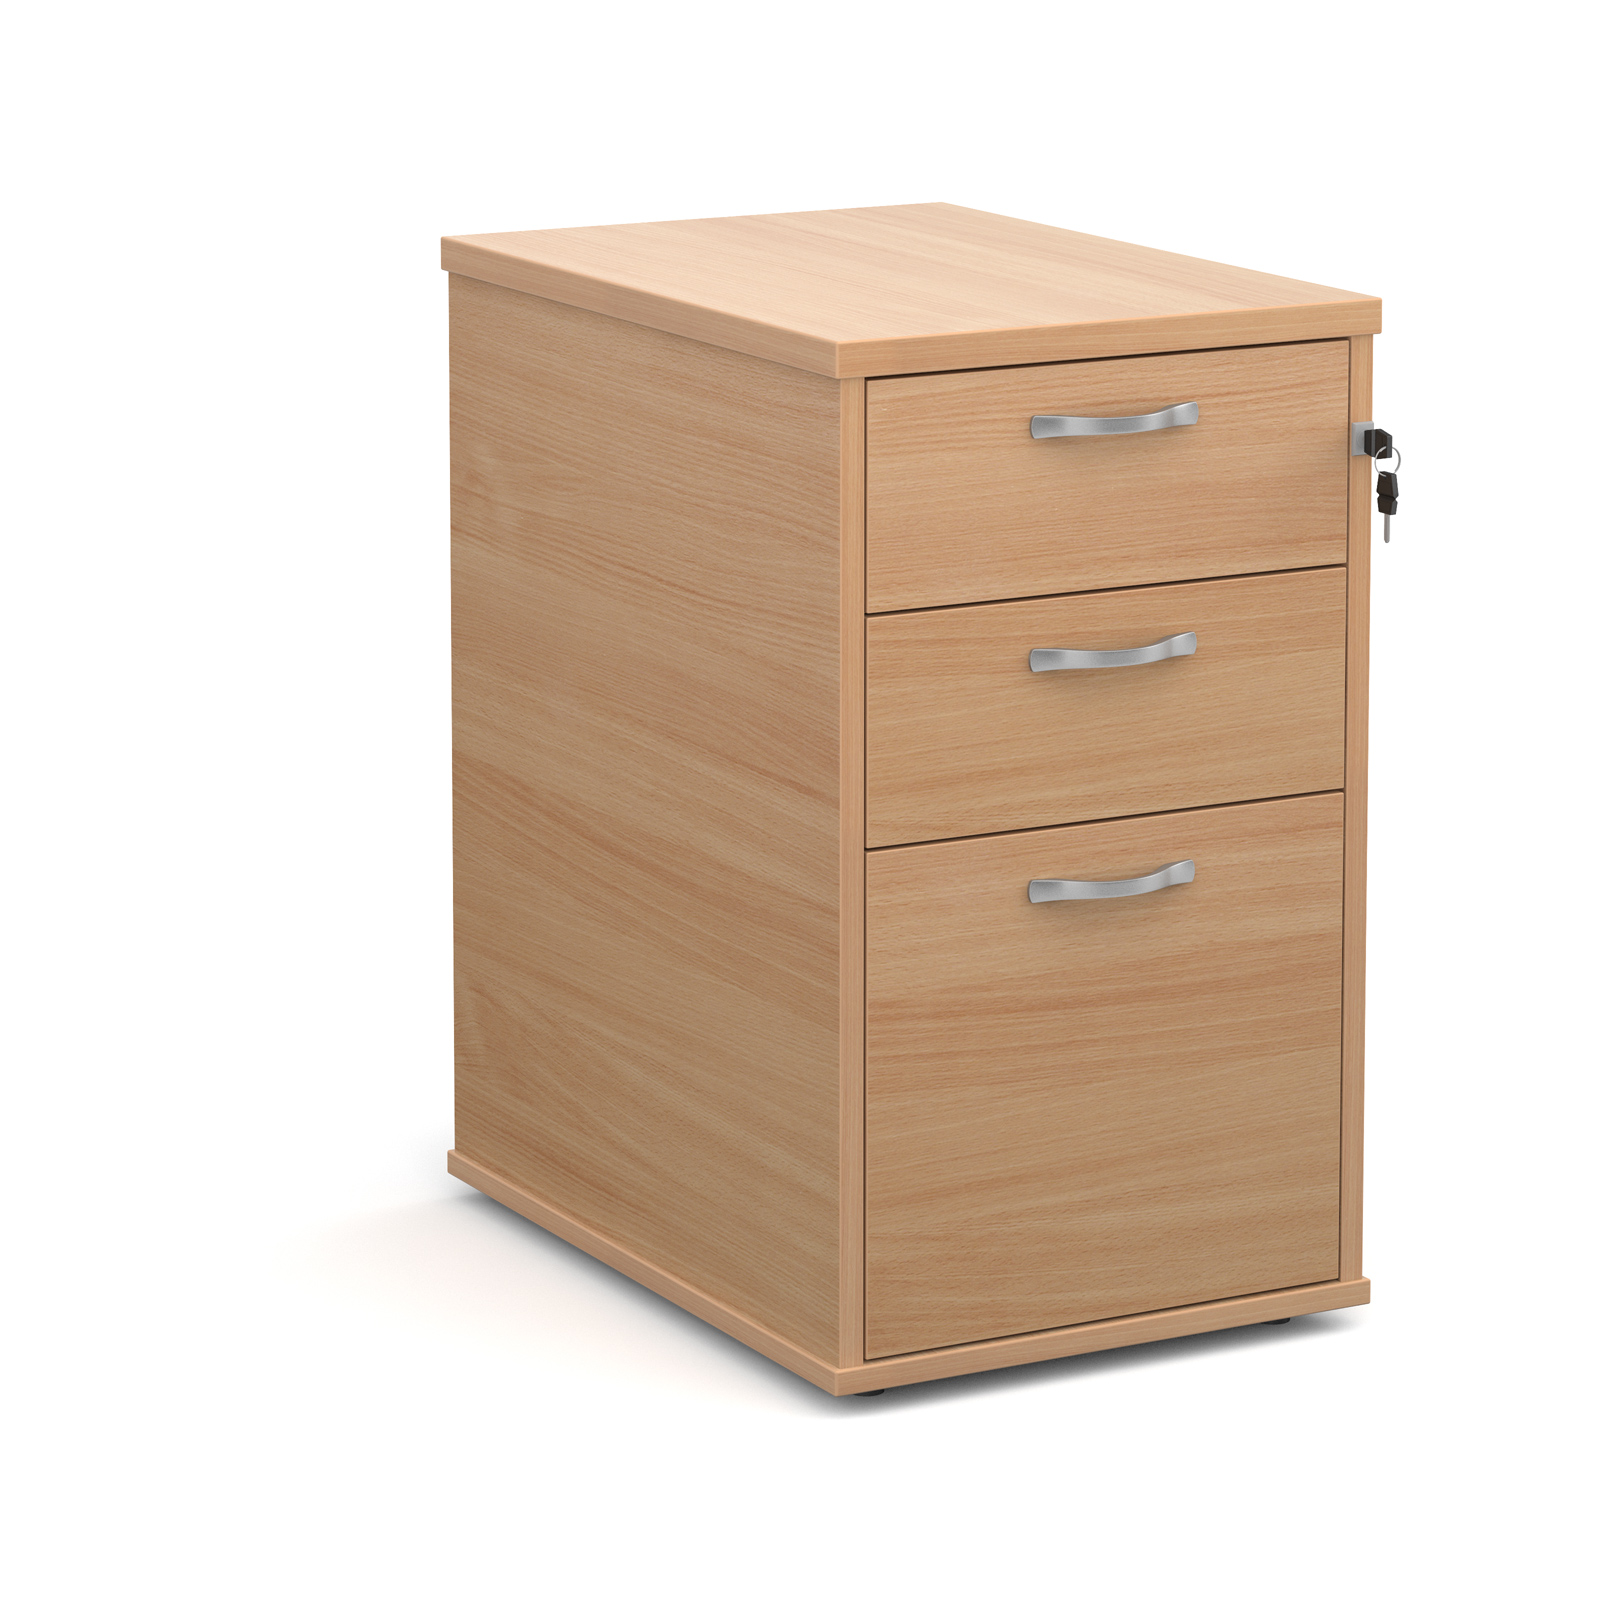 600mm Desk High 3 Drawer Pedestal in beech